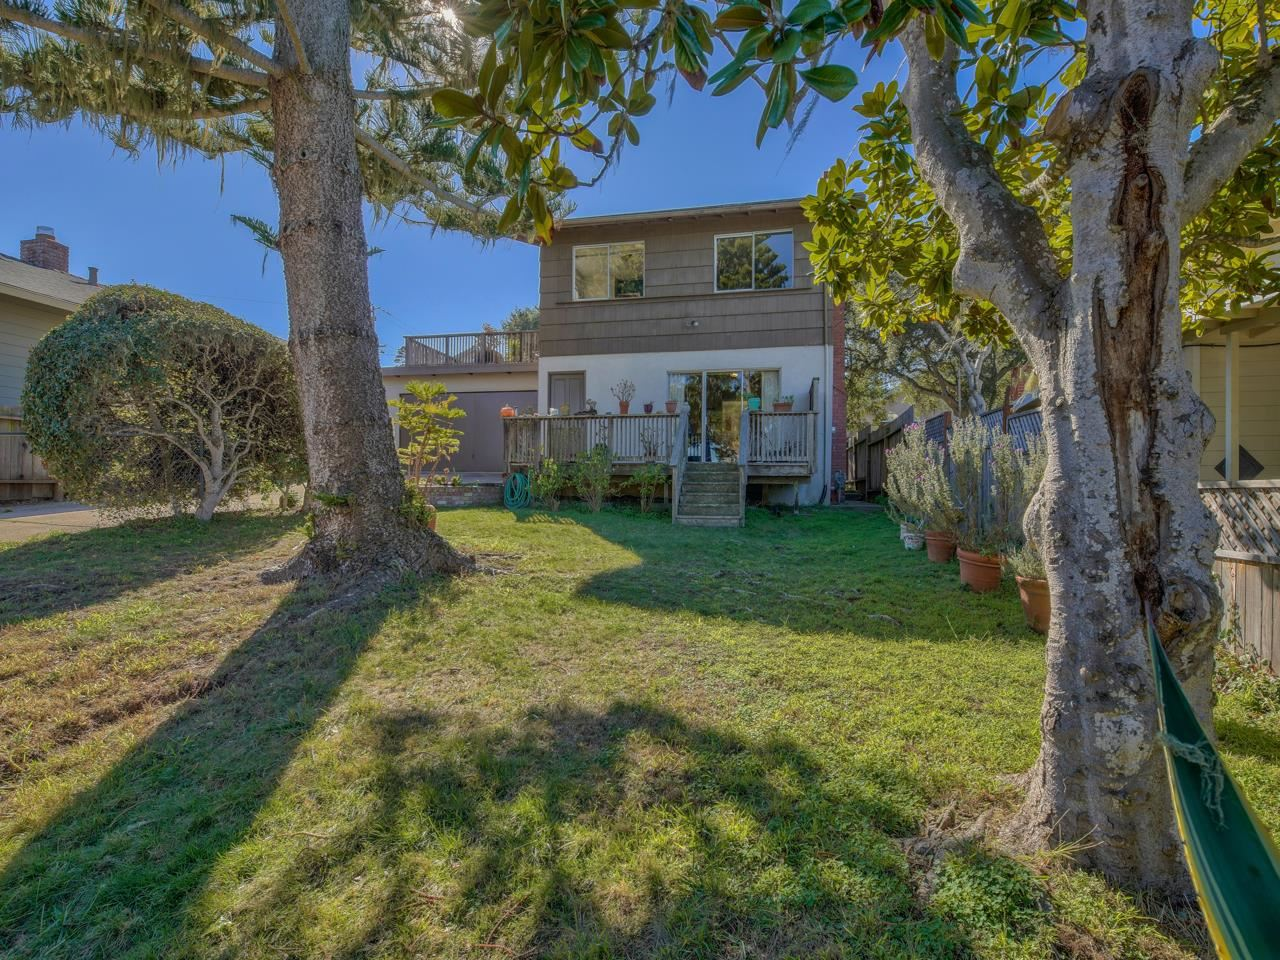 Photo for 811 Lily ST, MONTEREY, CA 93940 (MLS # ML81829200)